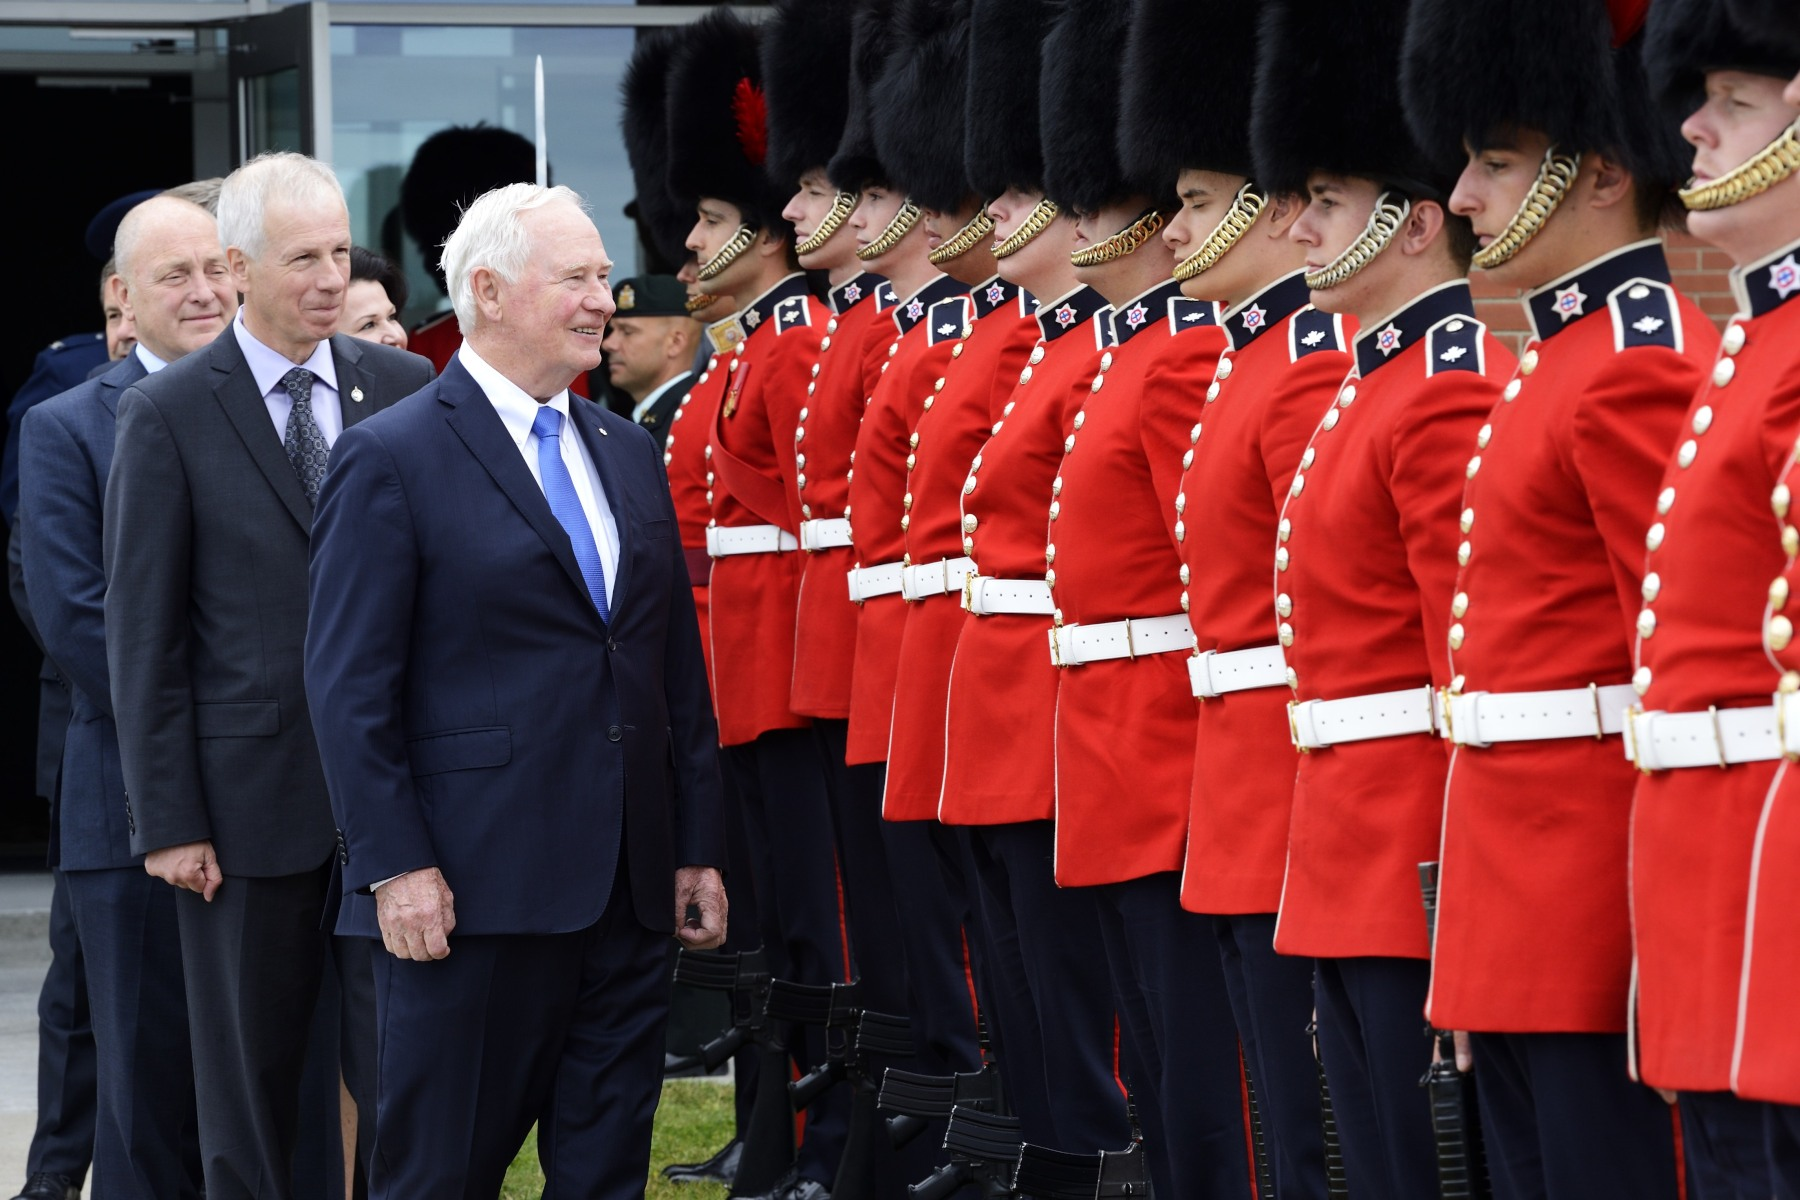 The Governor General inspected the guard of honour and spoke with some of its members.